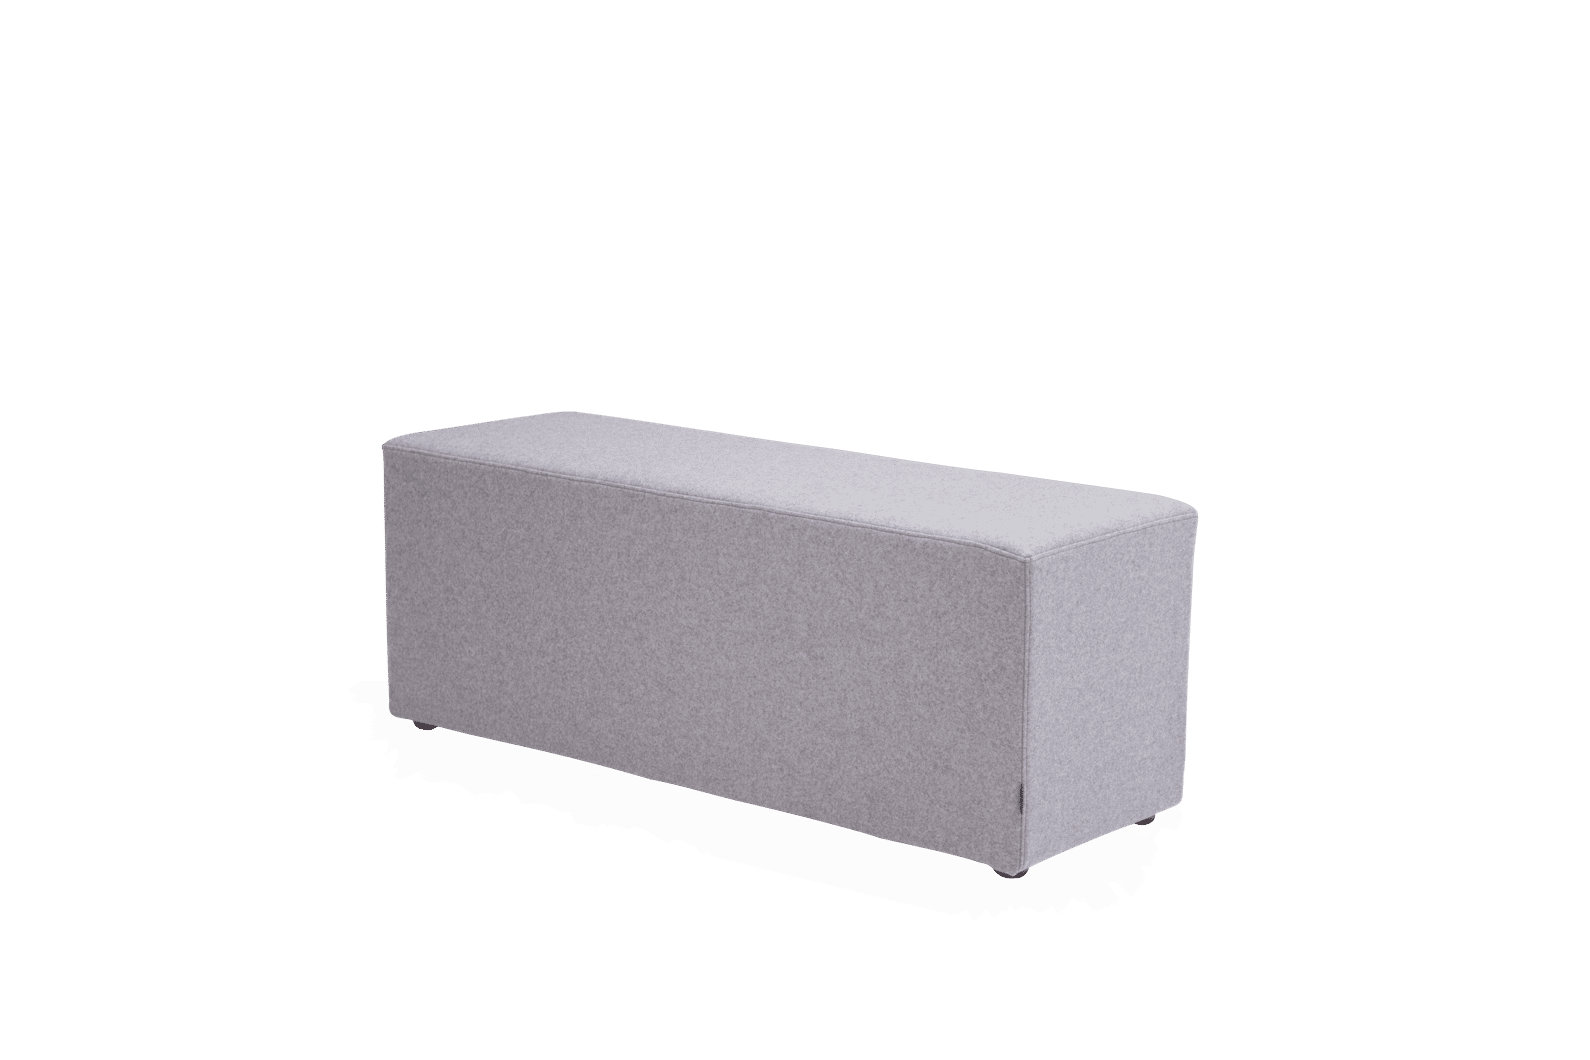 Maxis Ottoman - upholstered in your choice of fabric